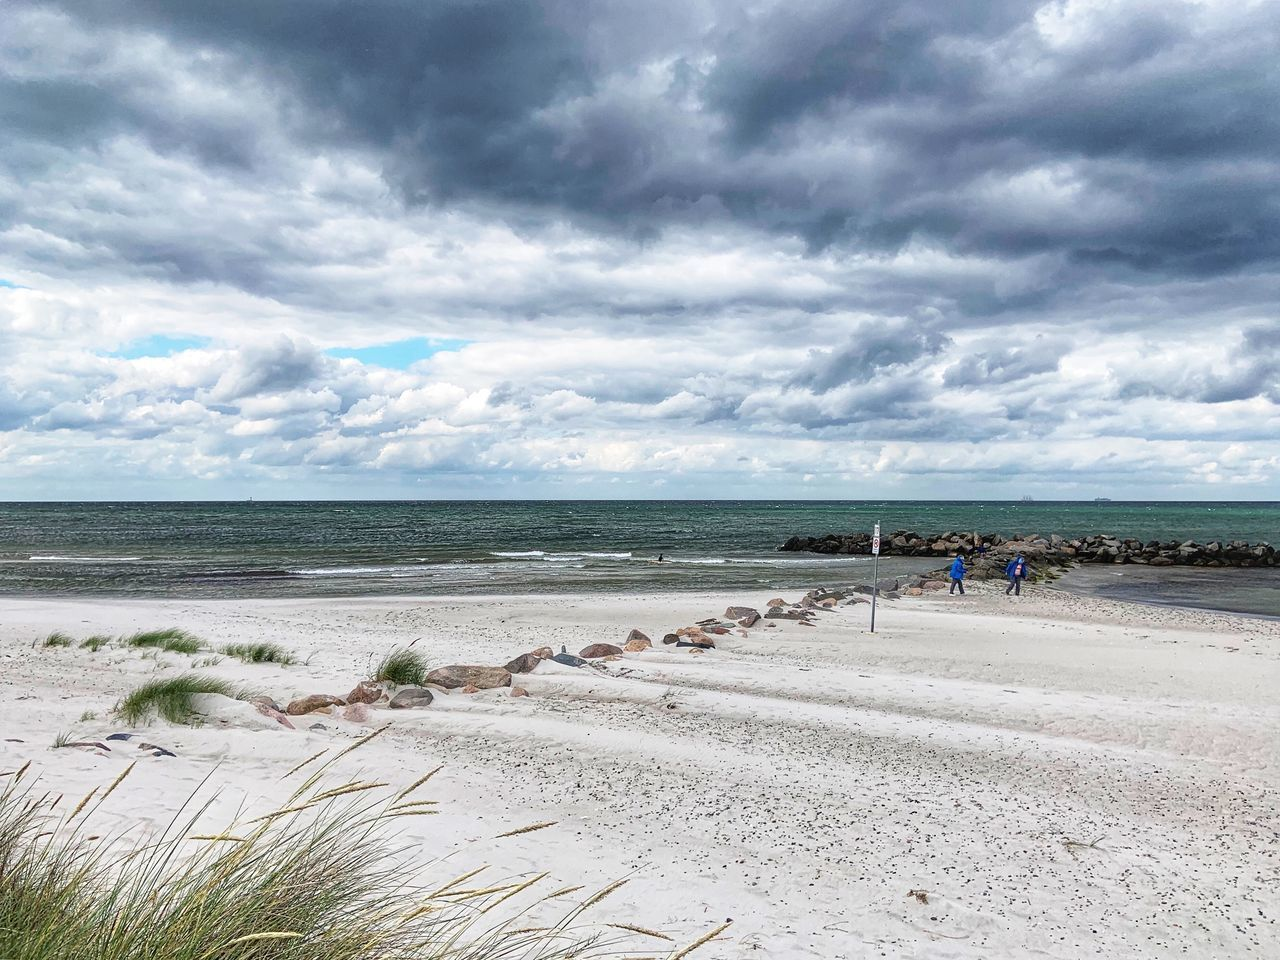 cloud - sky, sky, water, land, beach, sea, nature, day, group of people, sand, beauty in nature, scenics - nature, horizon, horizon over water, real people, incidental people, tranquil scene, overcast, outdoors